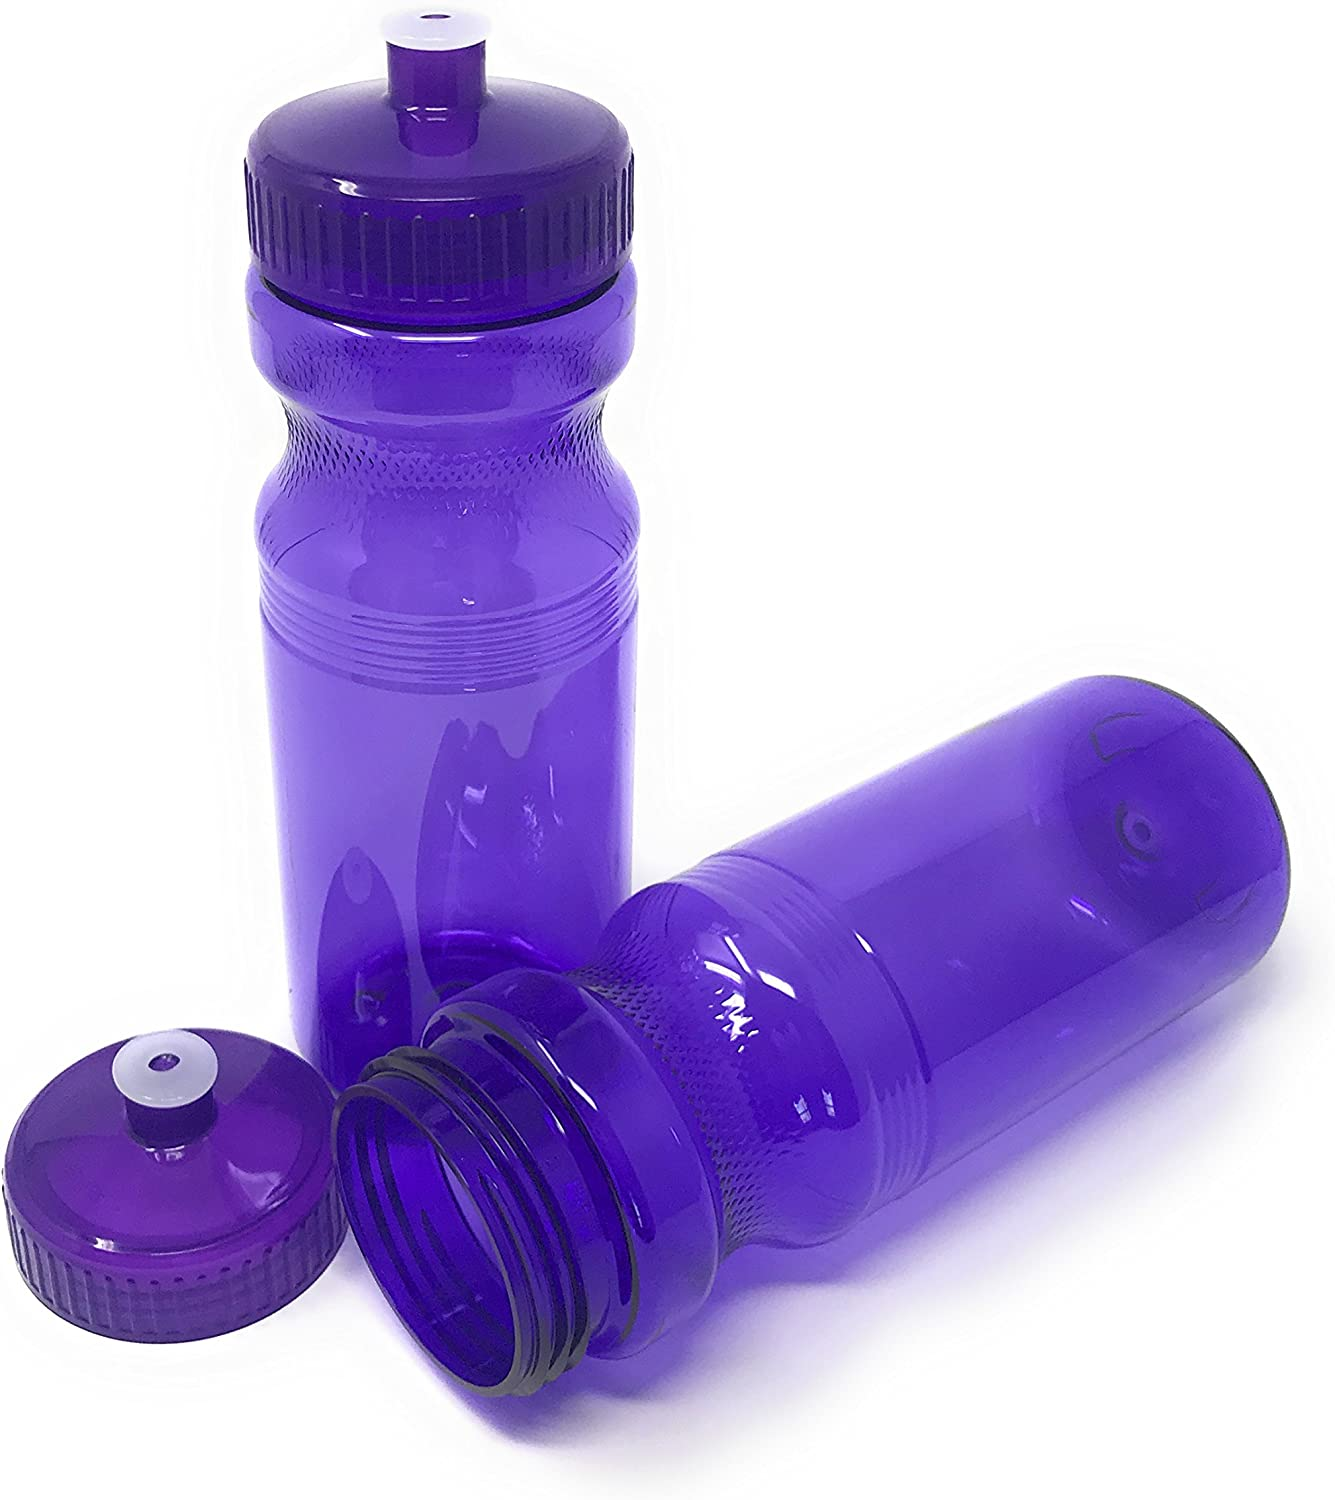 CSBD Sport Water Bottle 4 Pack, BPA Free, PET and HDPE Plastic, Made in USA, Bulk, Multiple Colors & Sizes Available